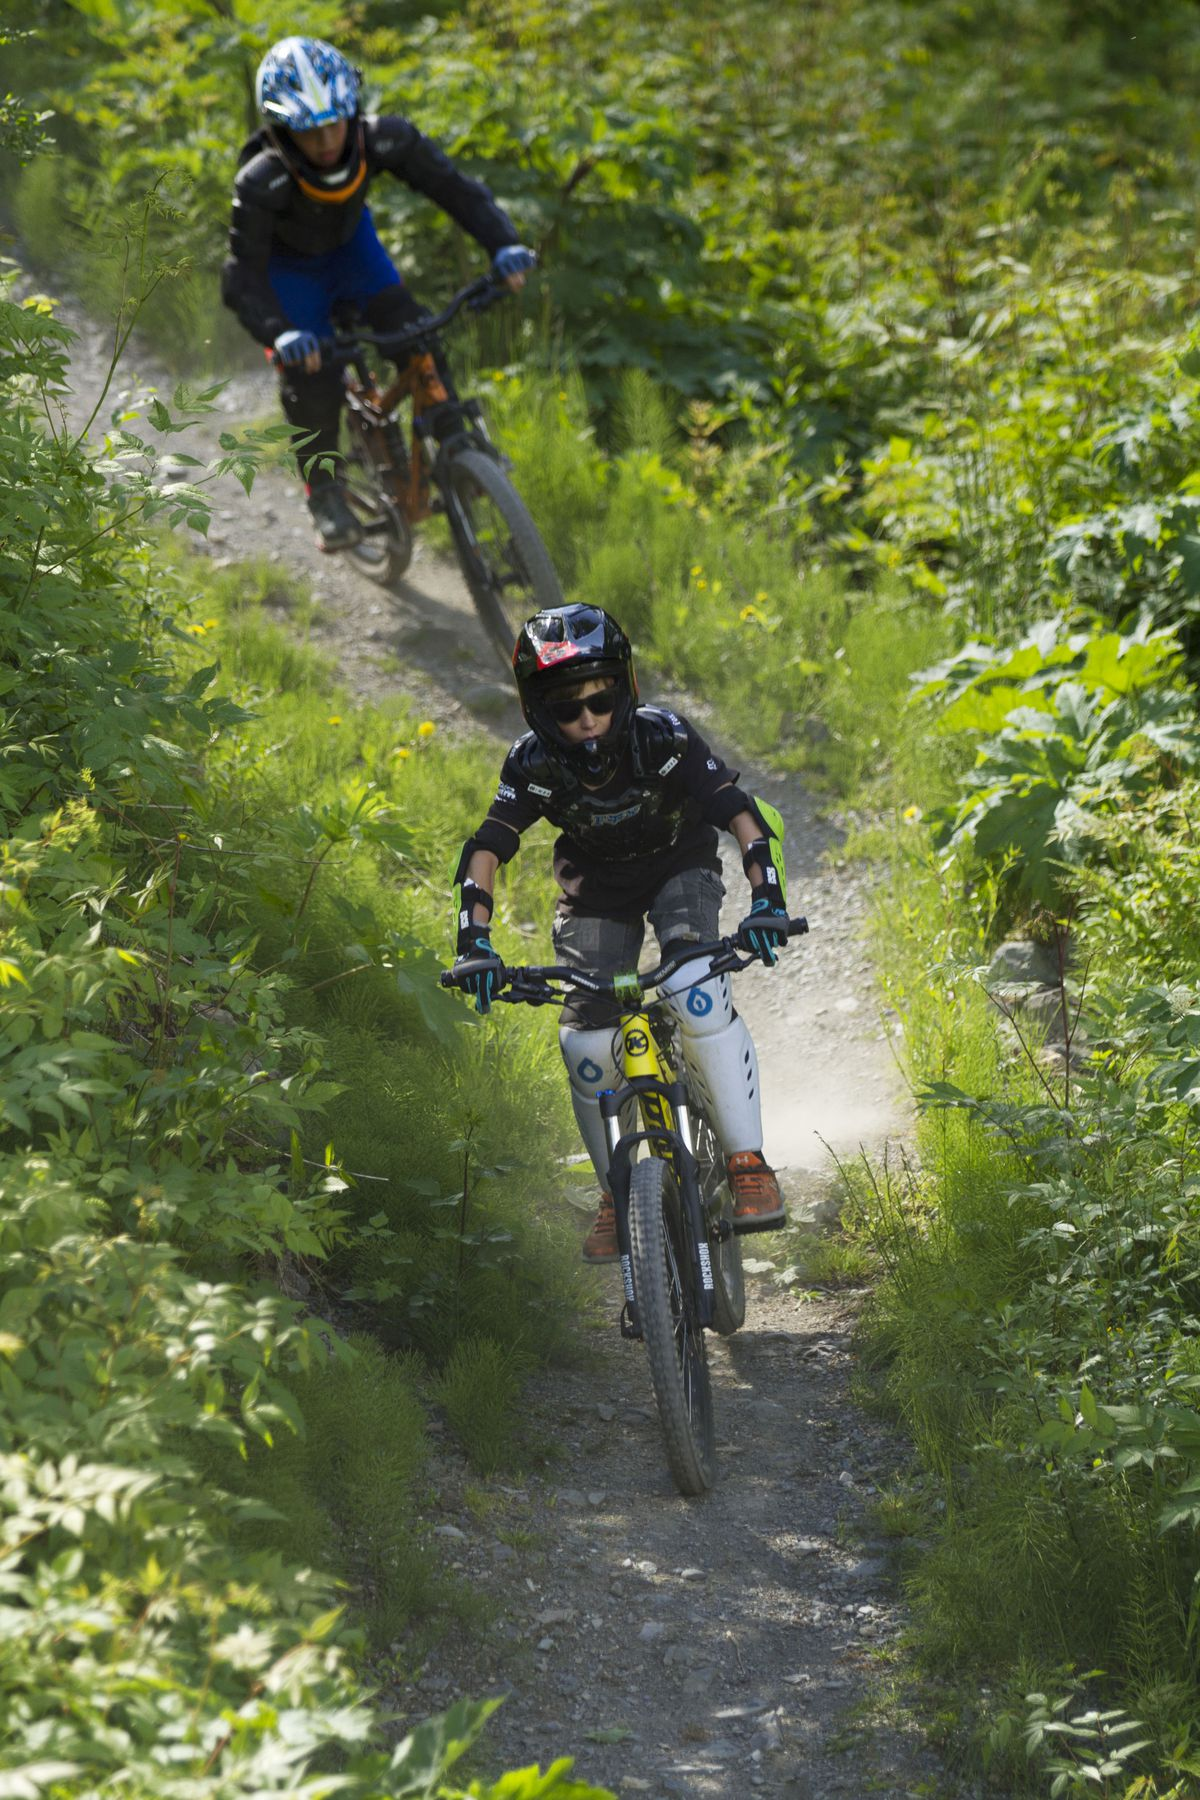 Two boys ride down Big Spruce trail at the Alyeska Bike Park on Friday, June 3, 2016. The age limit for mountain biking at the park is 8 years old. (Sarah Bell / ADN archive 2016)